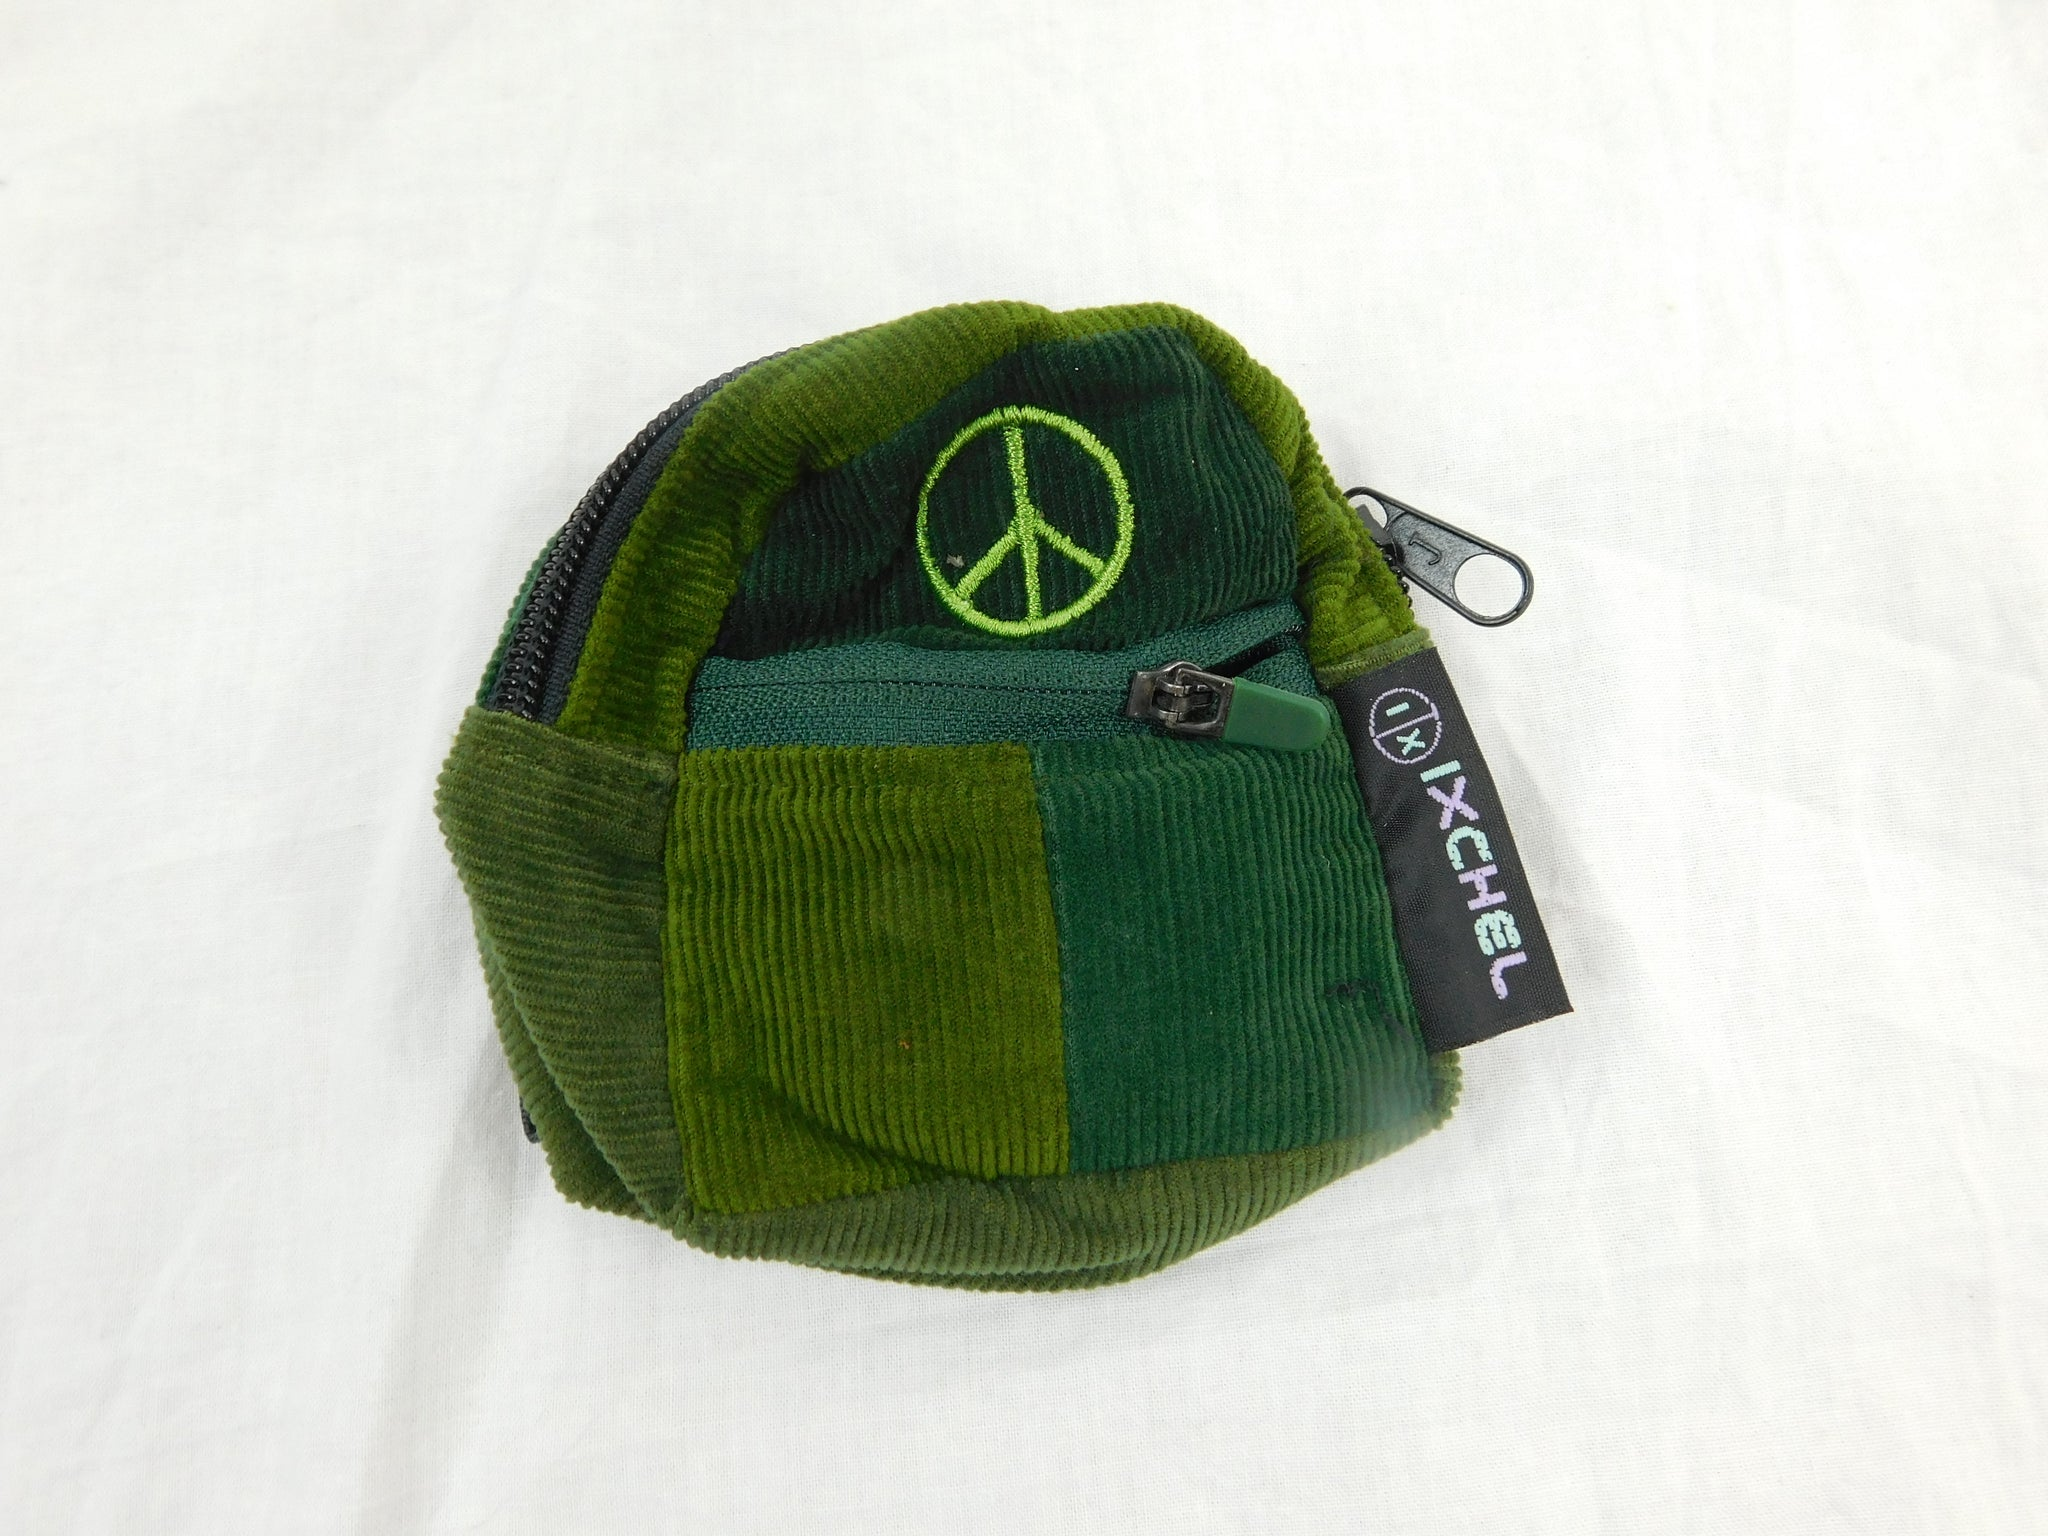 patctchwork corduroy micro Backpack with peace sign Embroidery